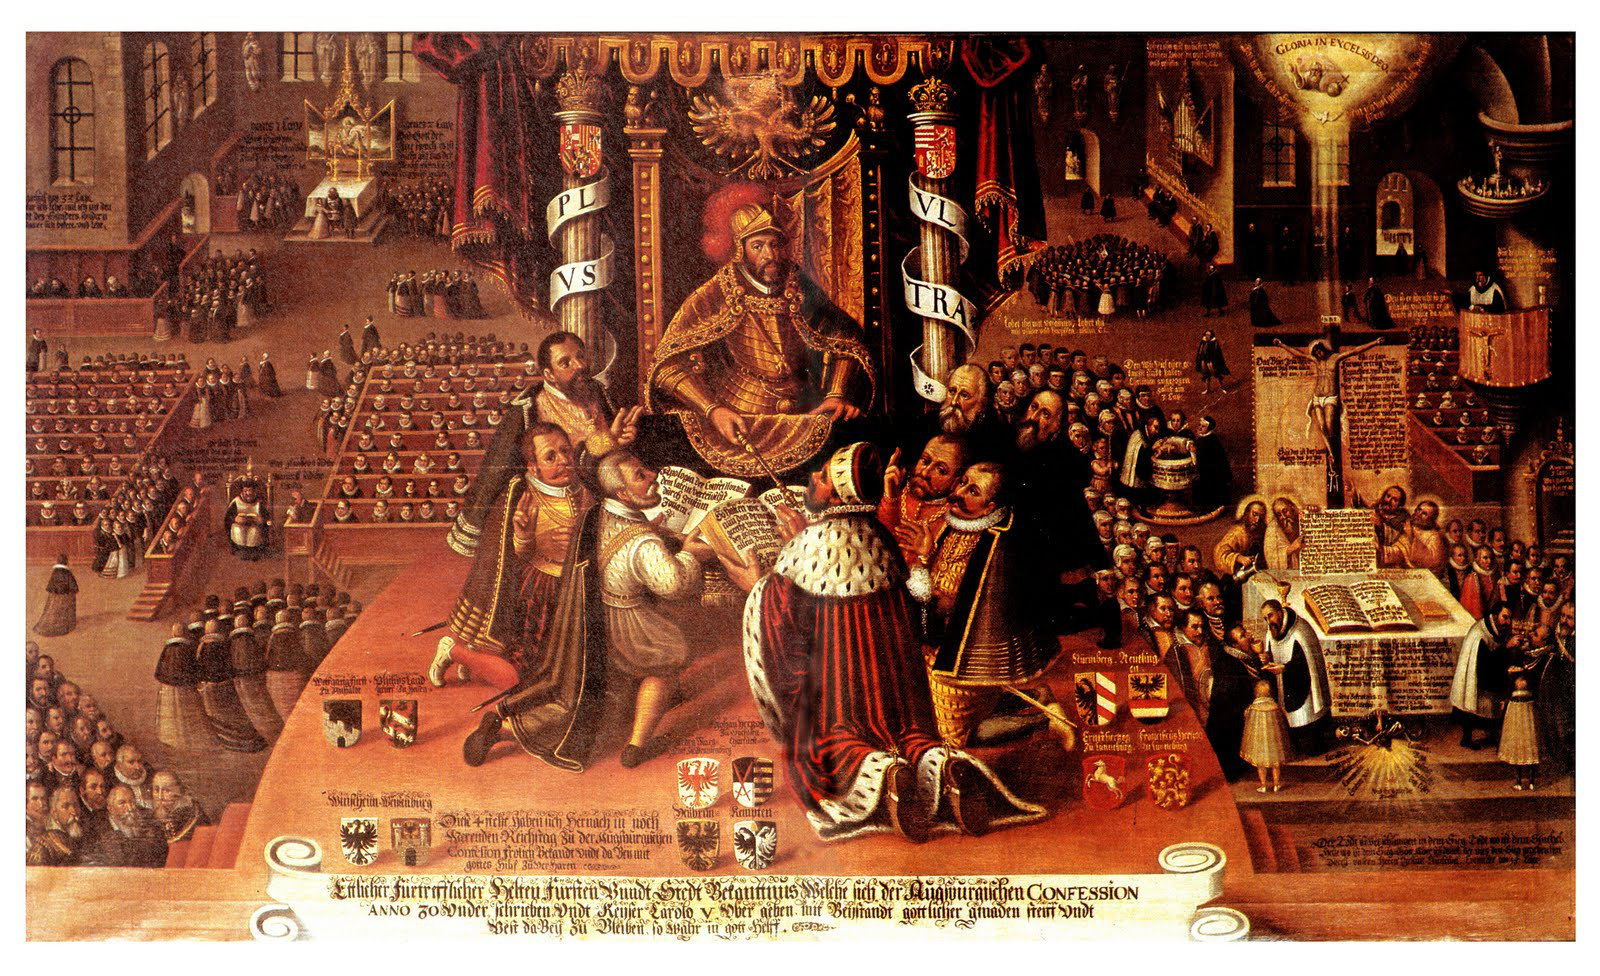 Presentation of the Augsburg Confession